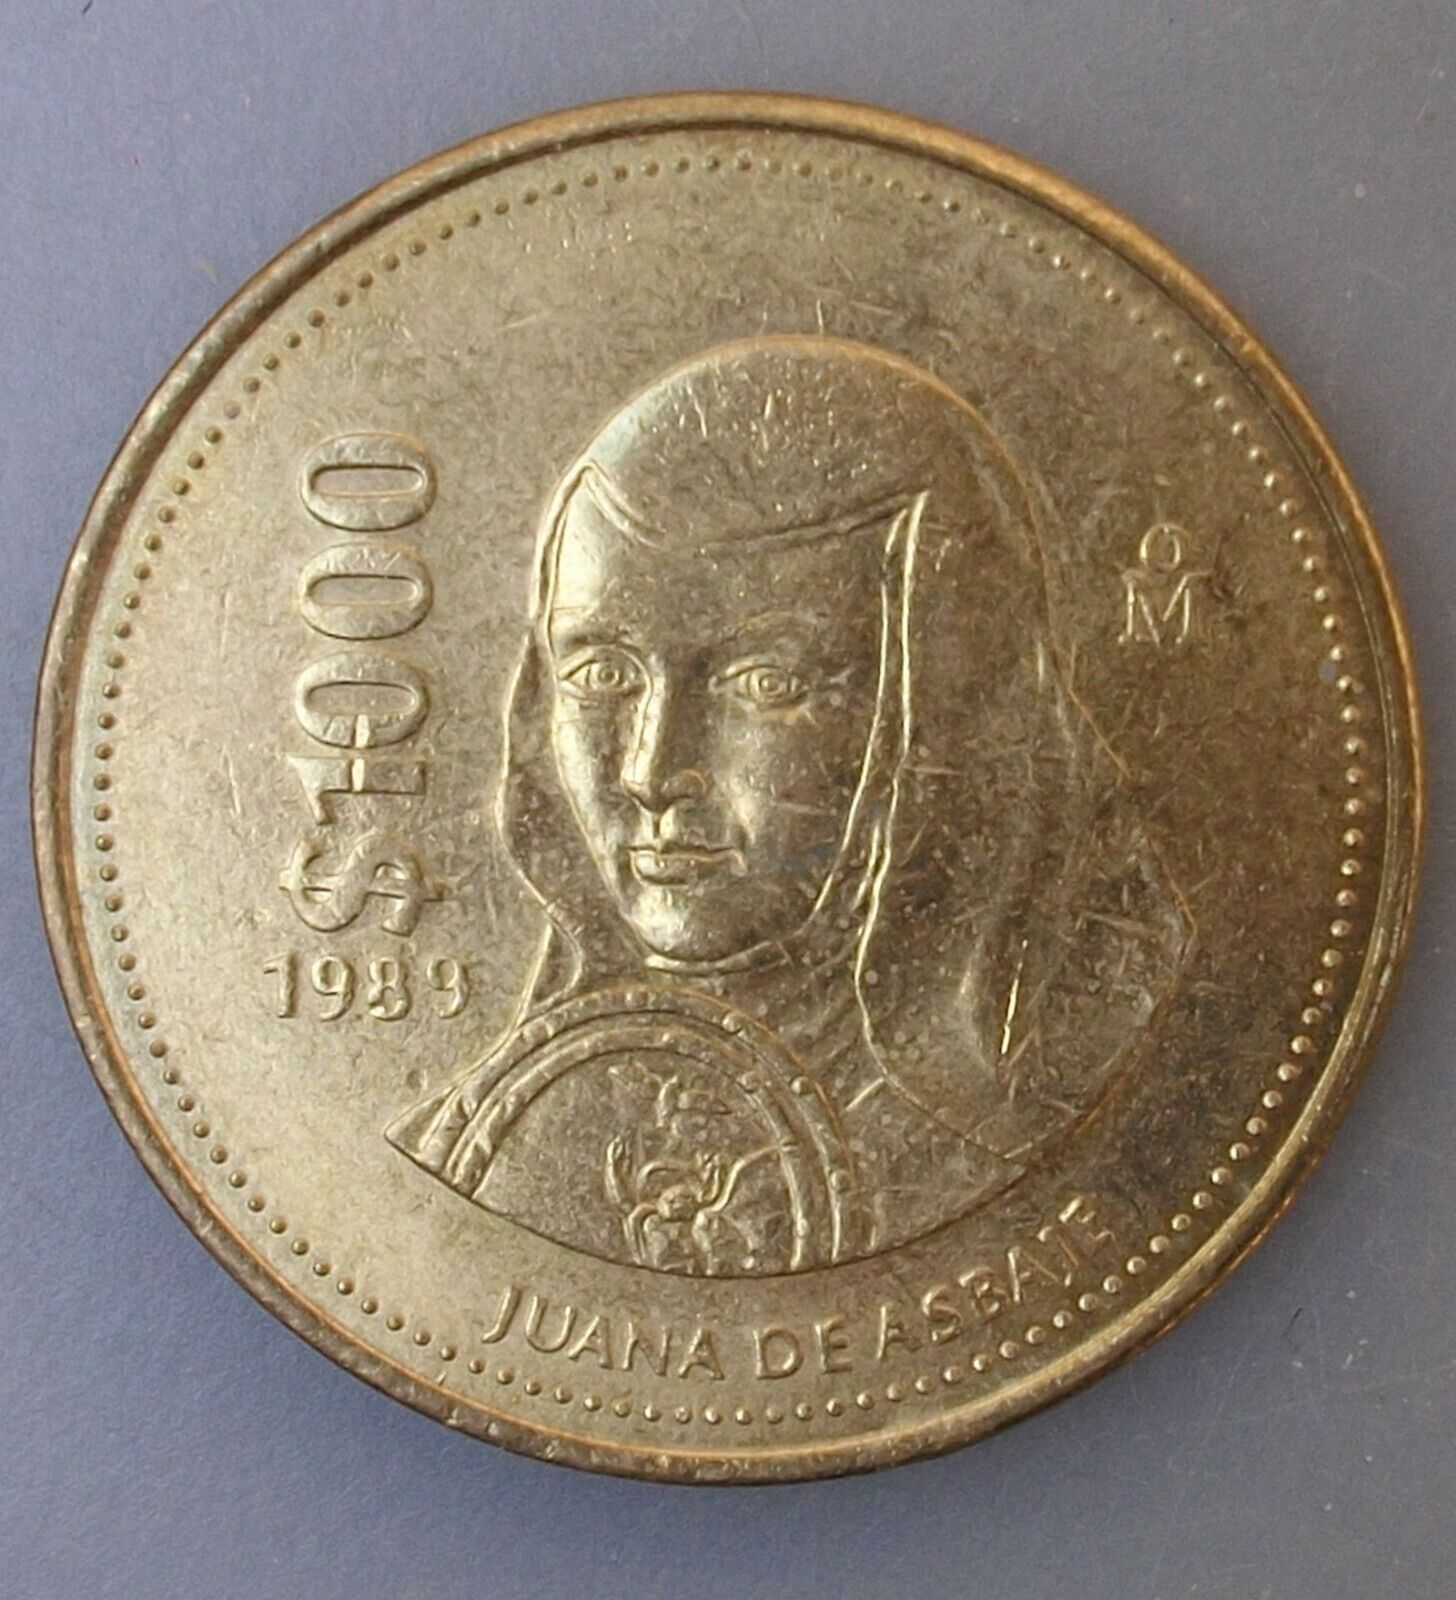 1989 1000 PESOS Thousand MEXICO World Uncirculated LARGE BU COIN Poqiqy - $3.99